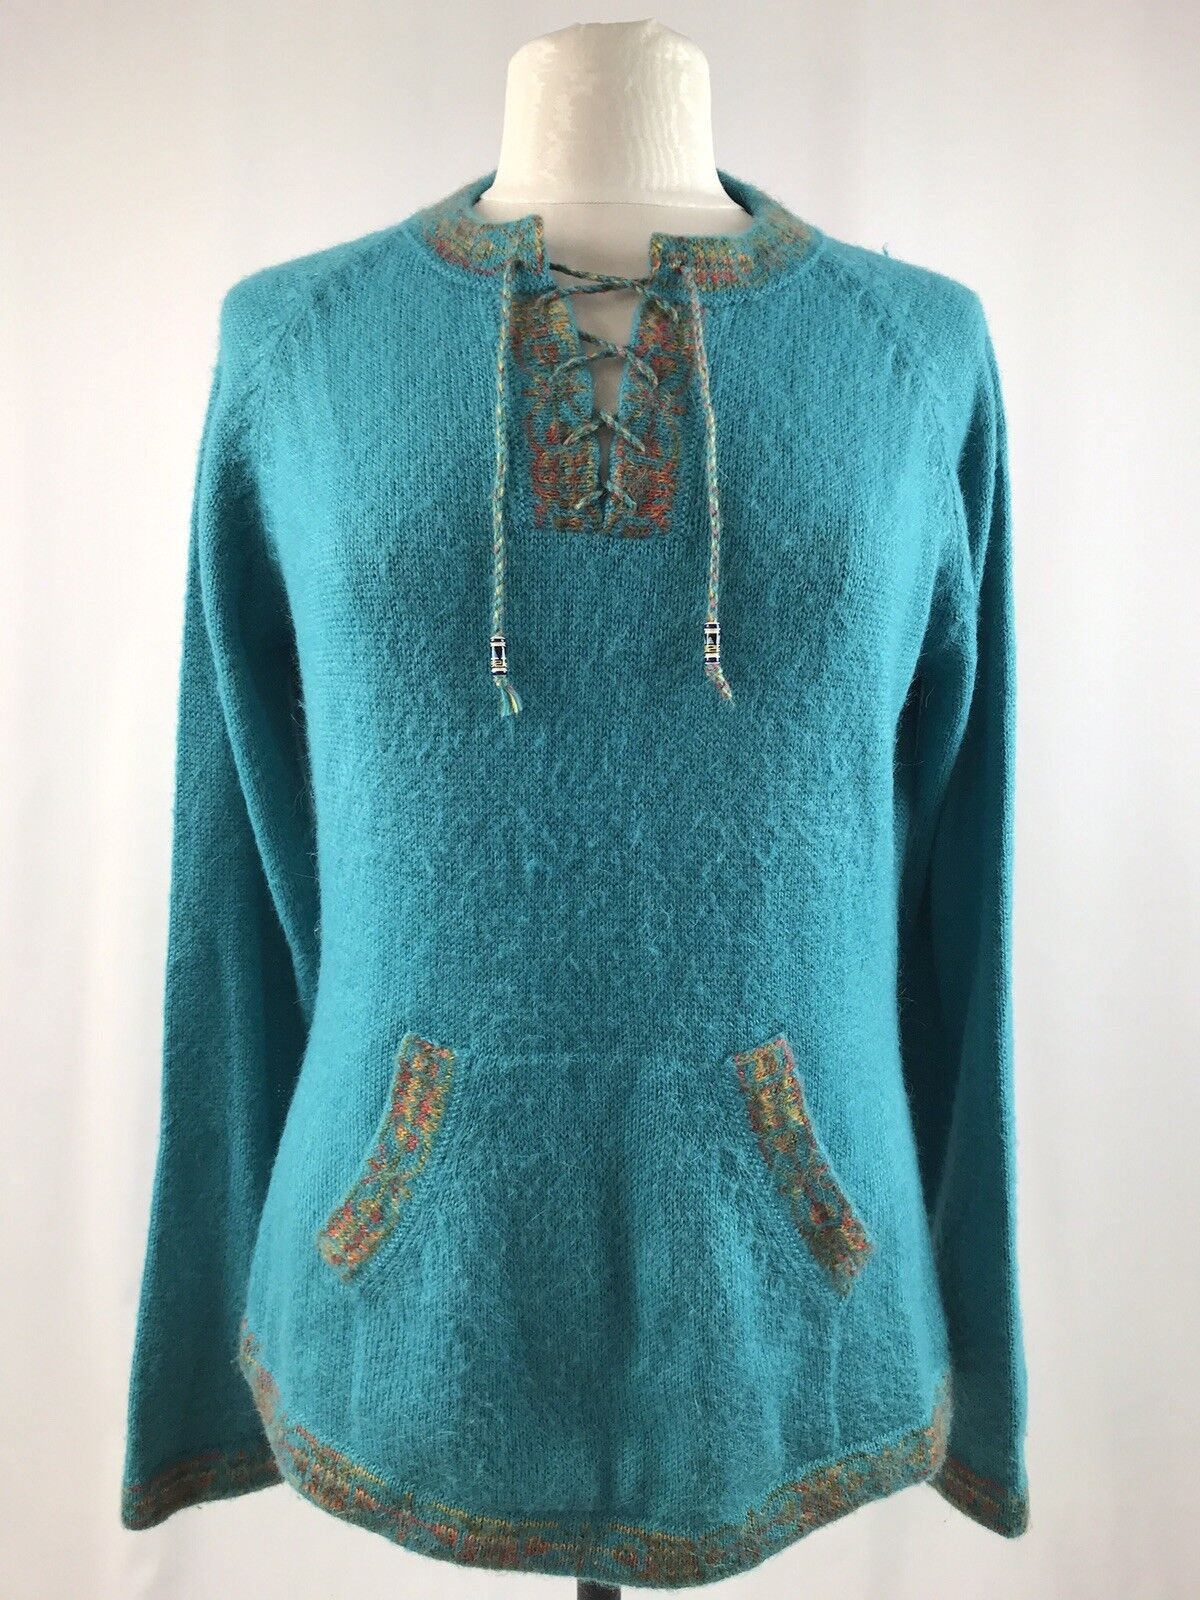 The Alpaca Connection Alpaca Pull Over Tunic Sweater Size Large Teal